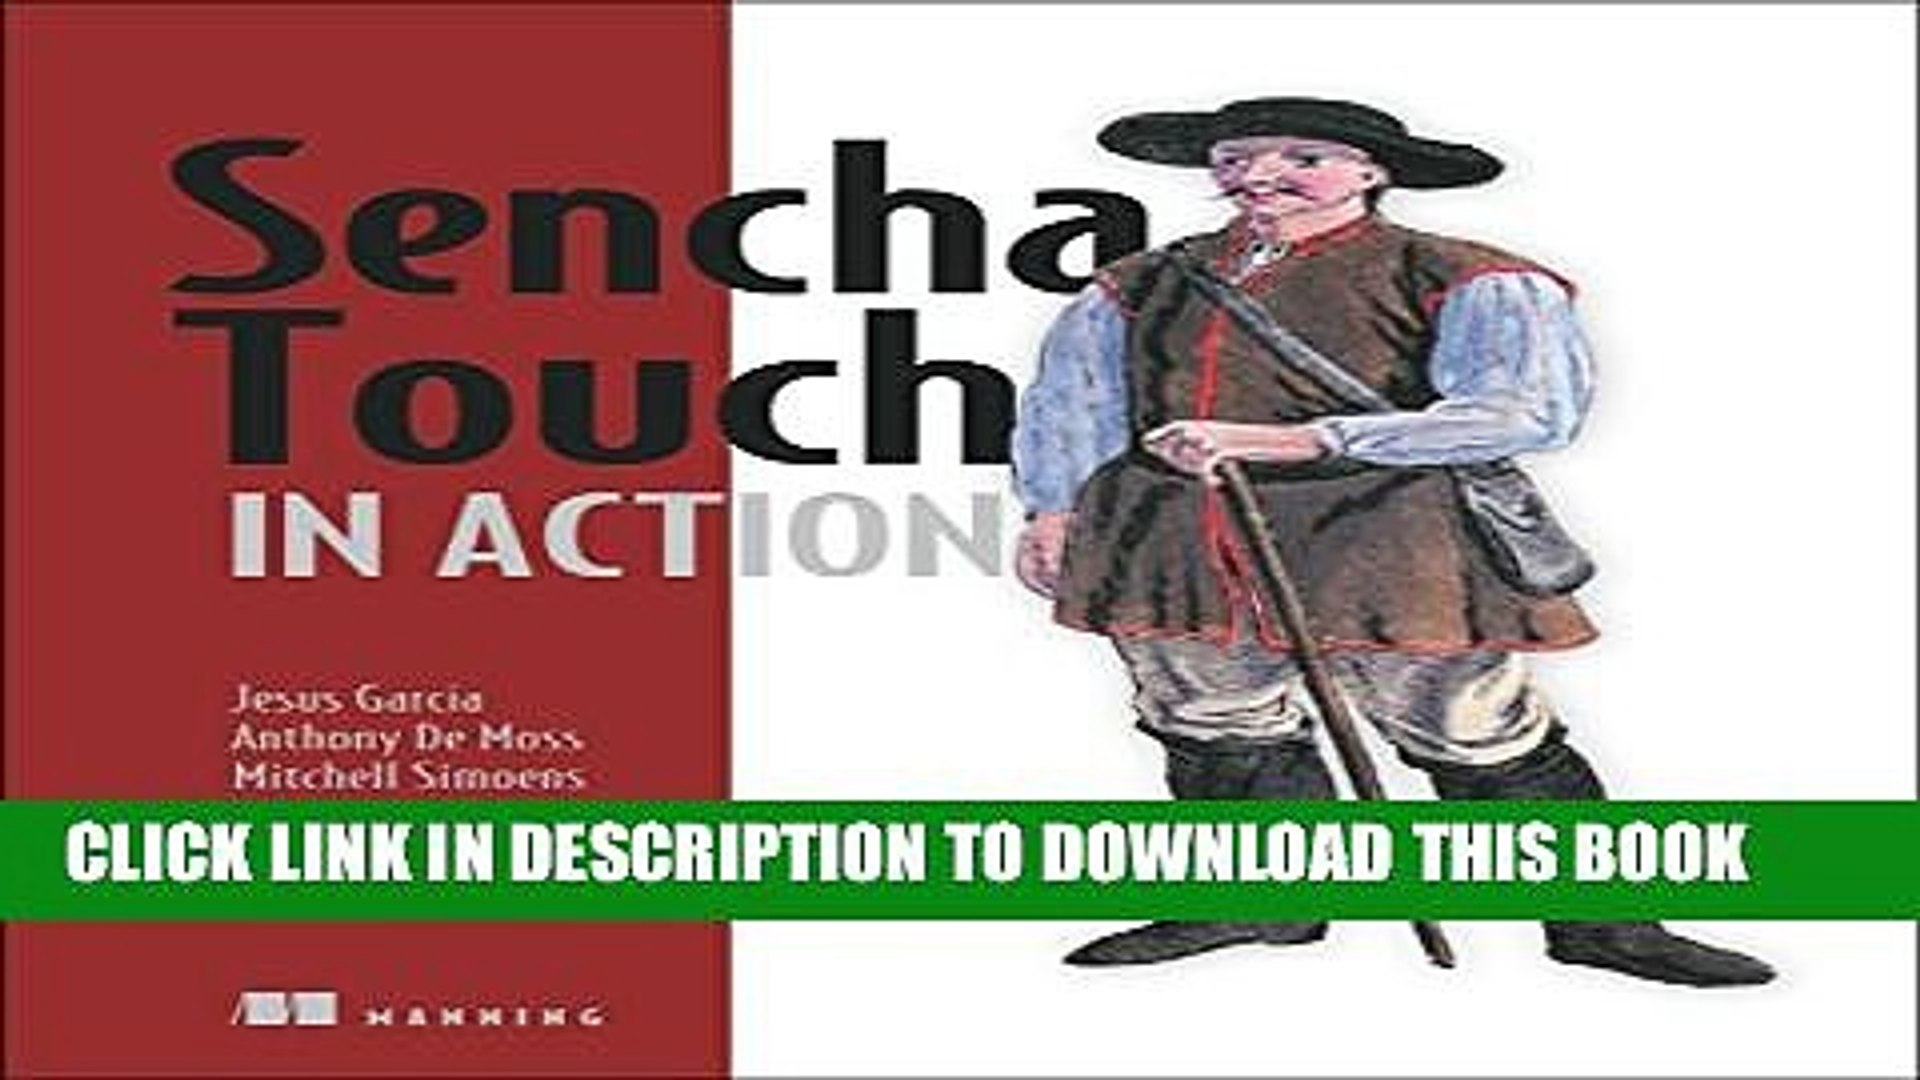 Sencha touch complete by joe lennon [leanpub pdf/ipad/kindle].